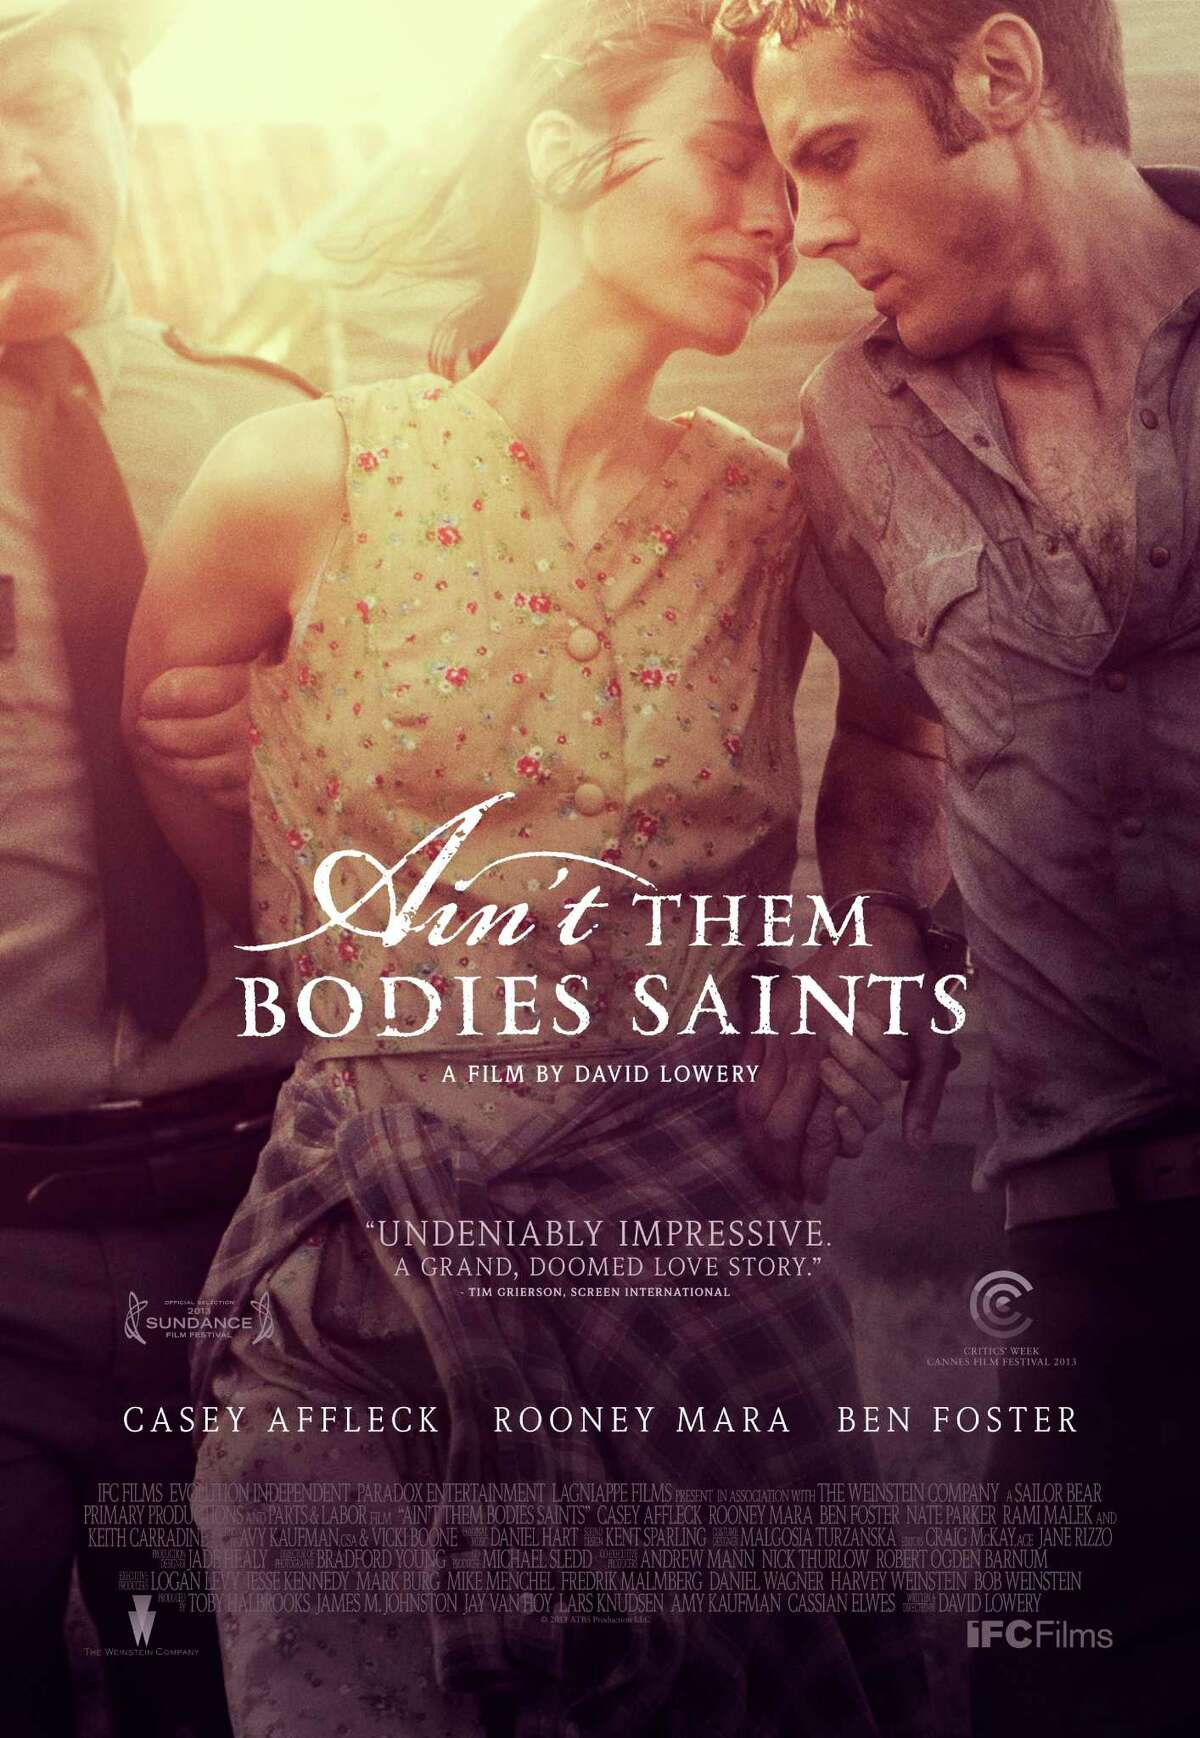 Rooney Mara and Casey Affleck as outlaws on the run in Ain't Them Bodies Saints, a film by David Lowery